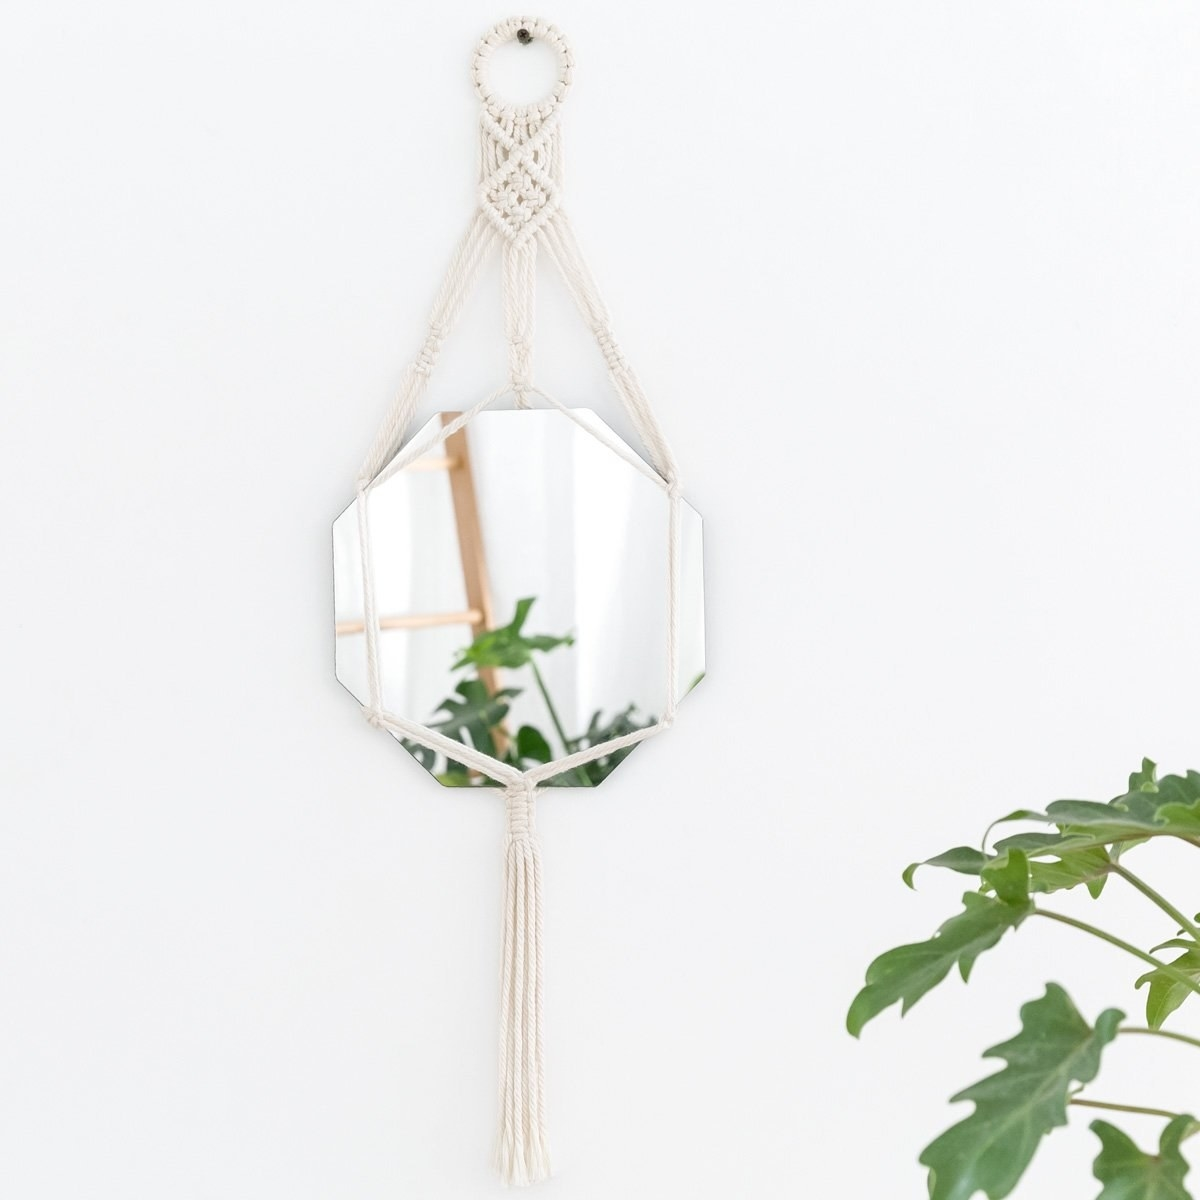 The macrame wall mirror hanging on a wall.